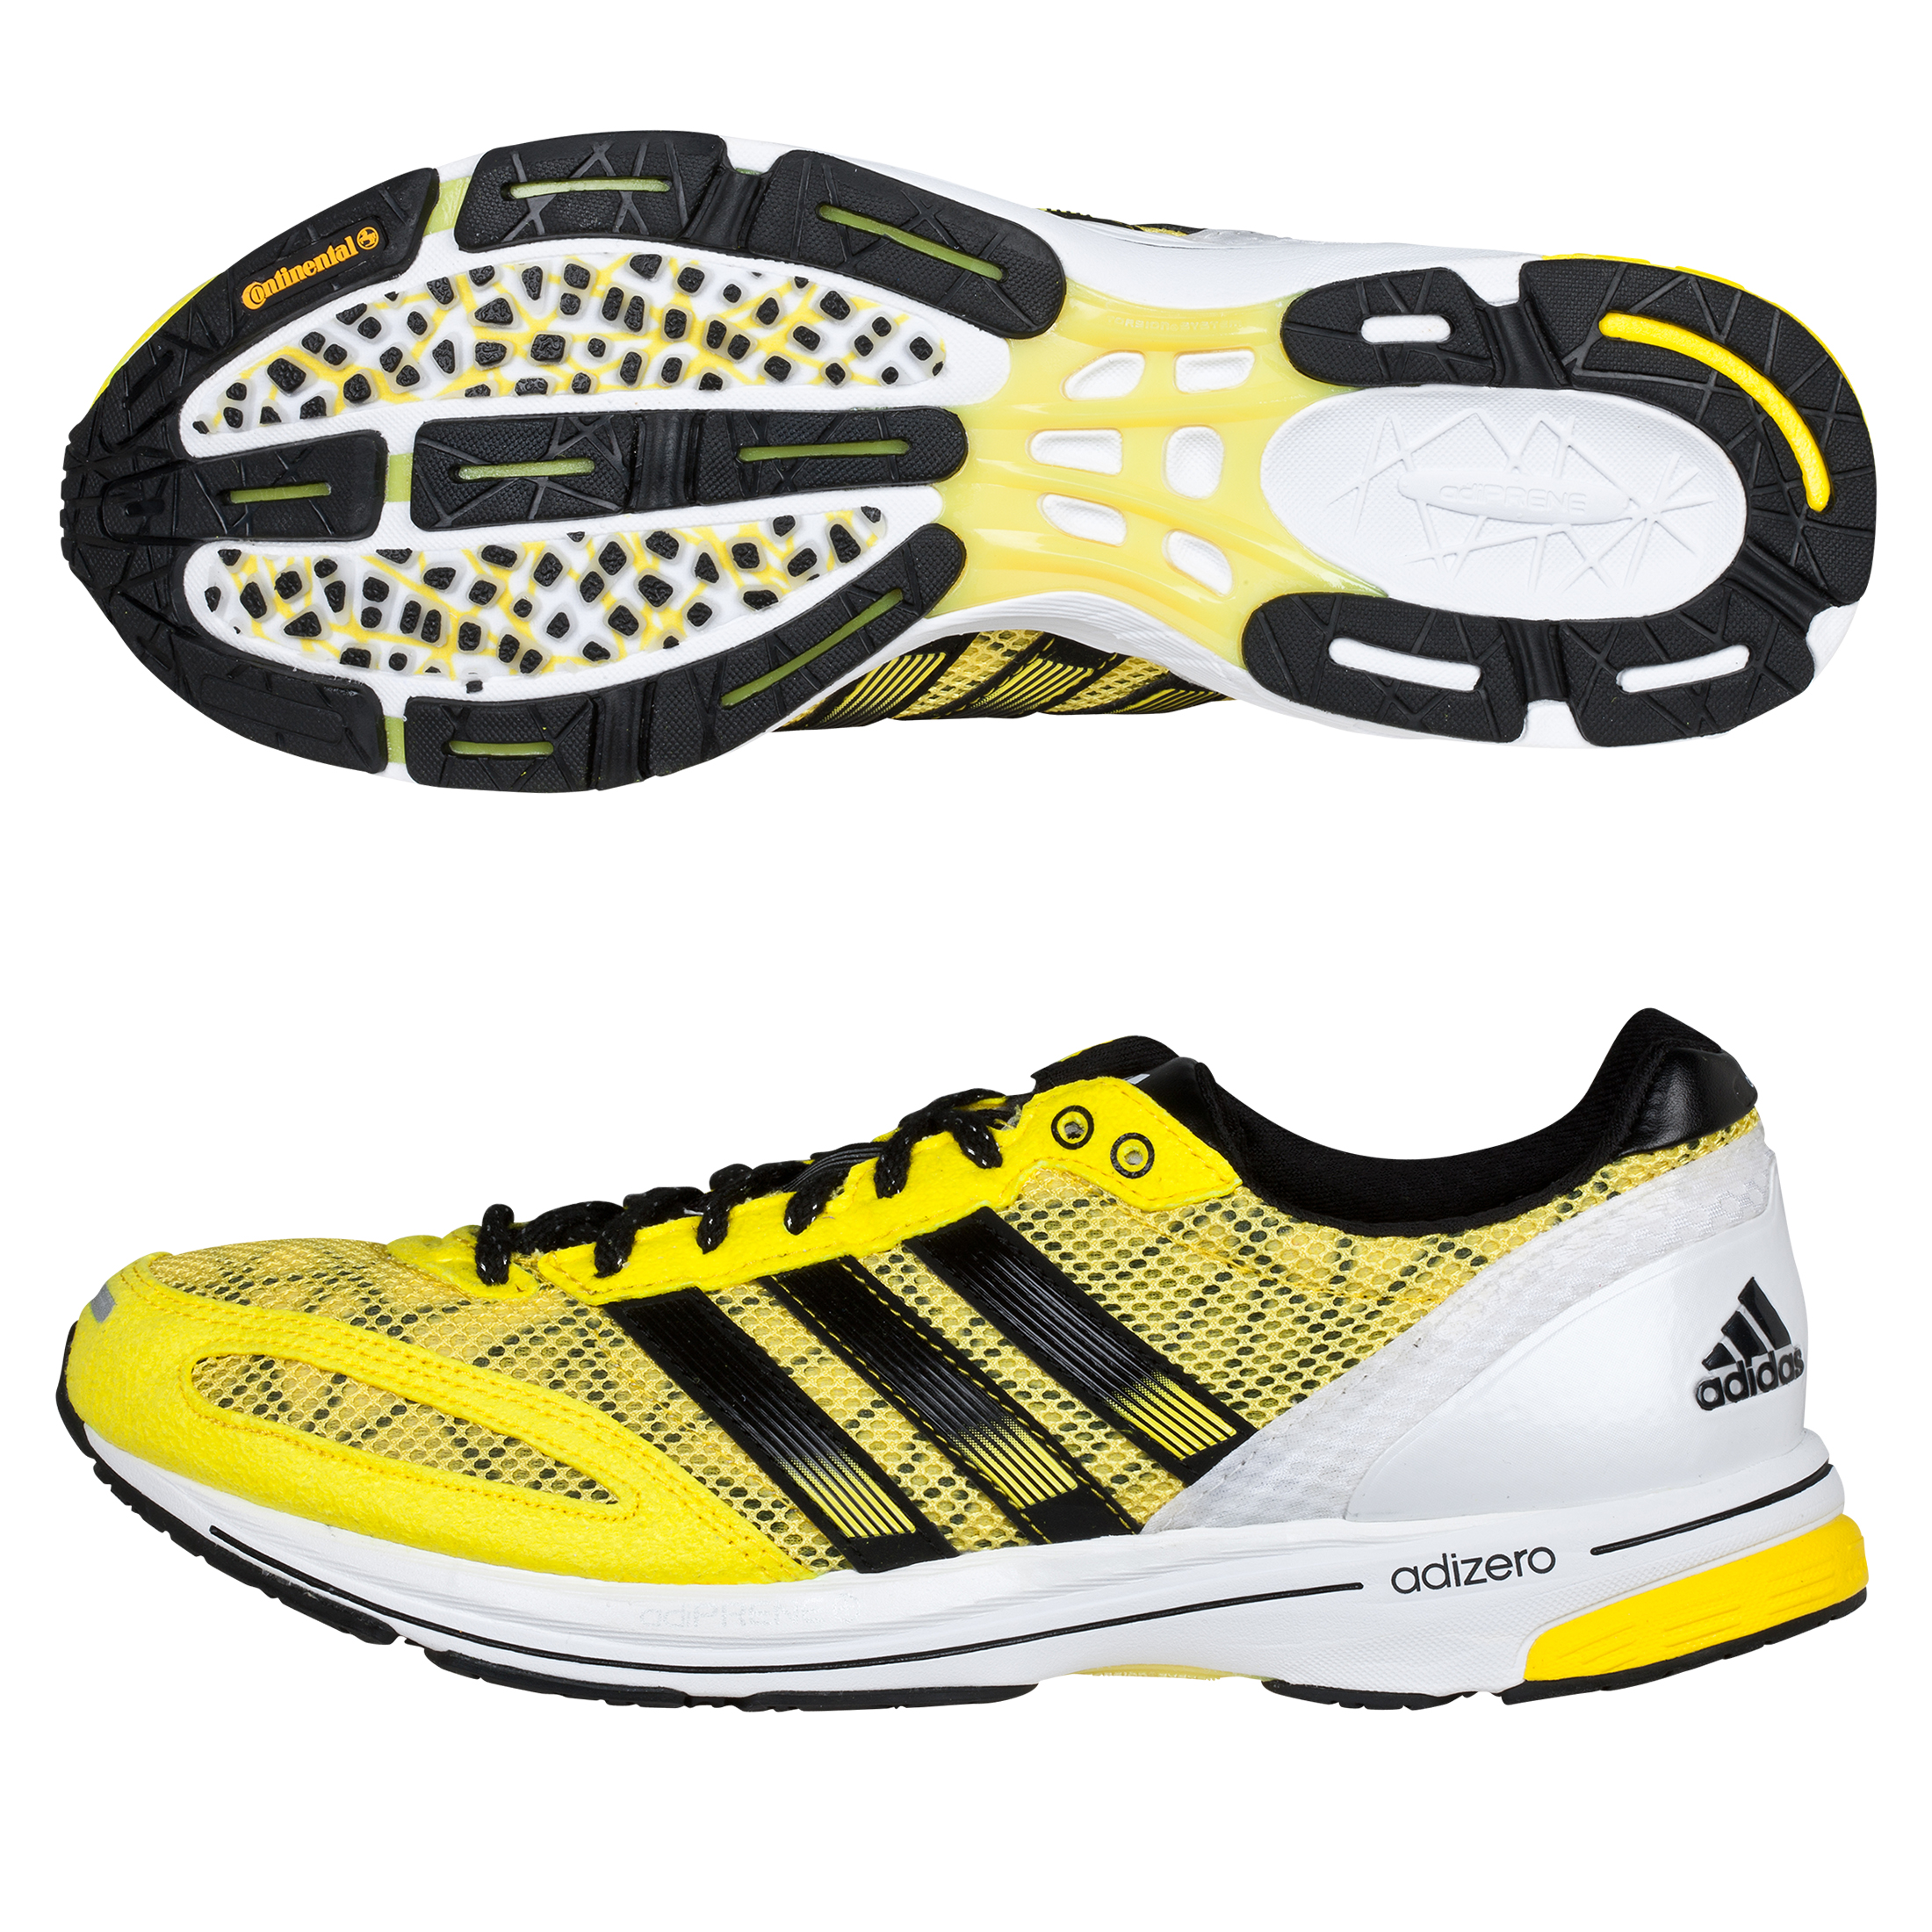 Adidas Adizero Adios 2 Trainers - Vivid Yellow/Black